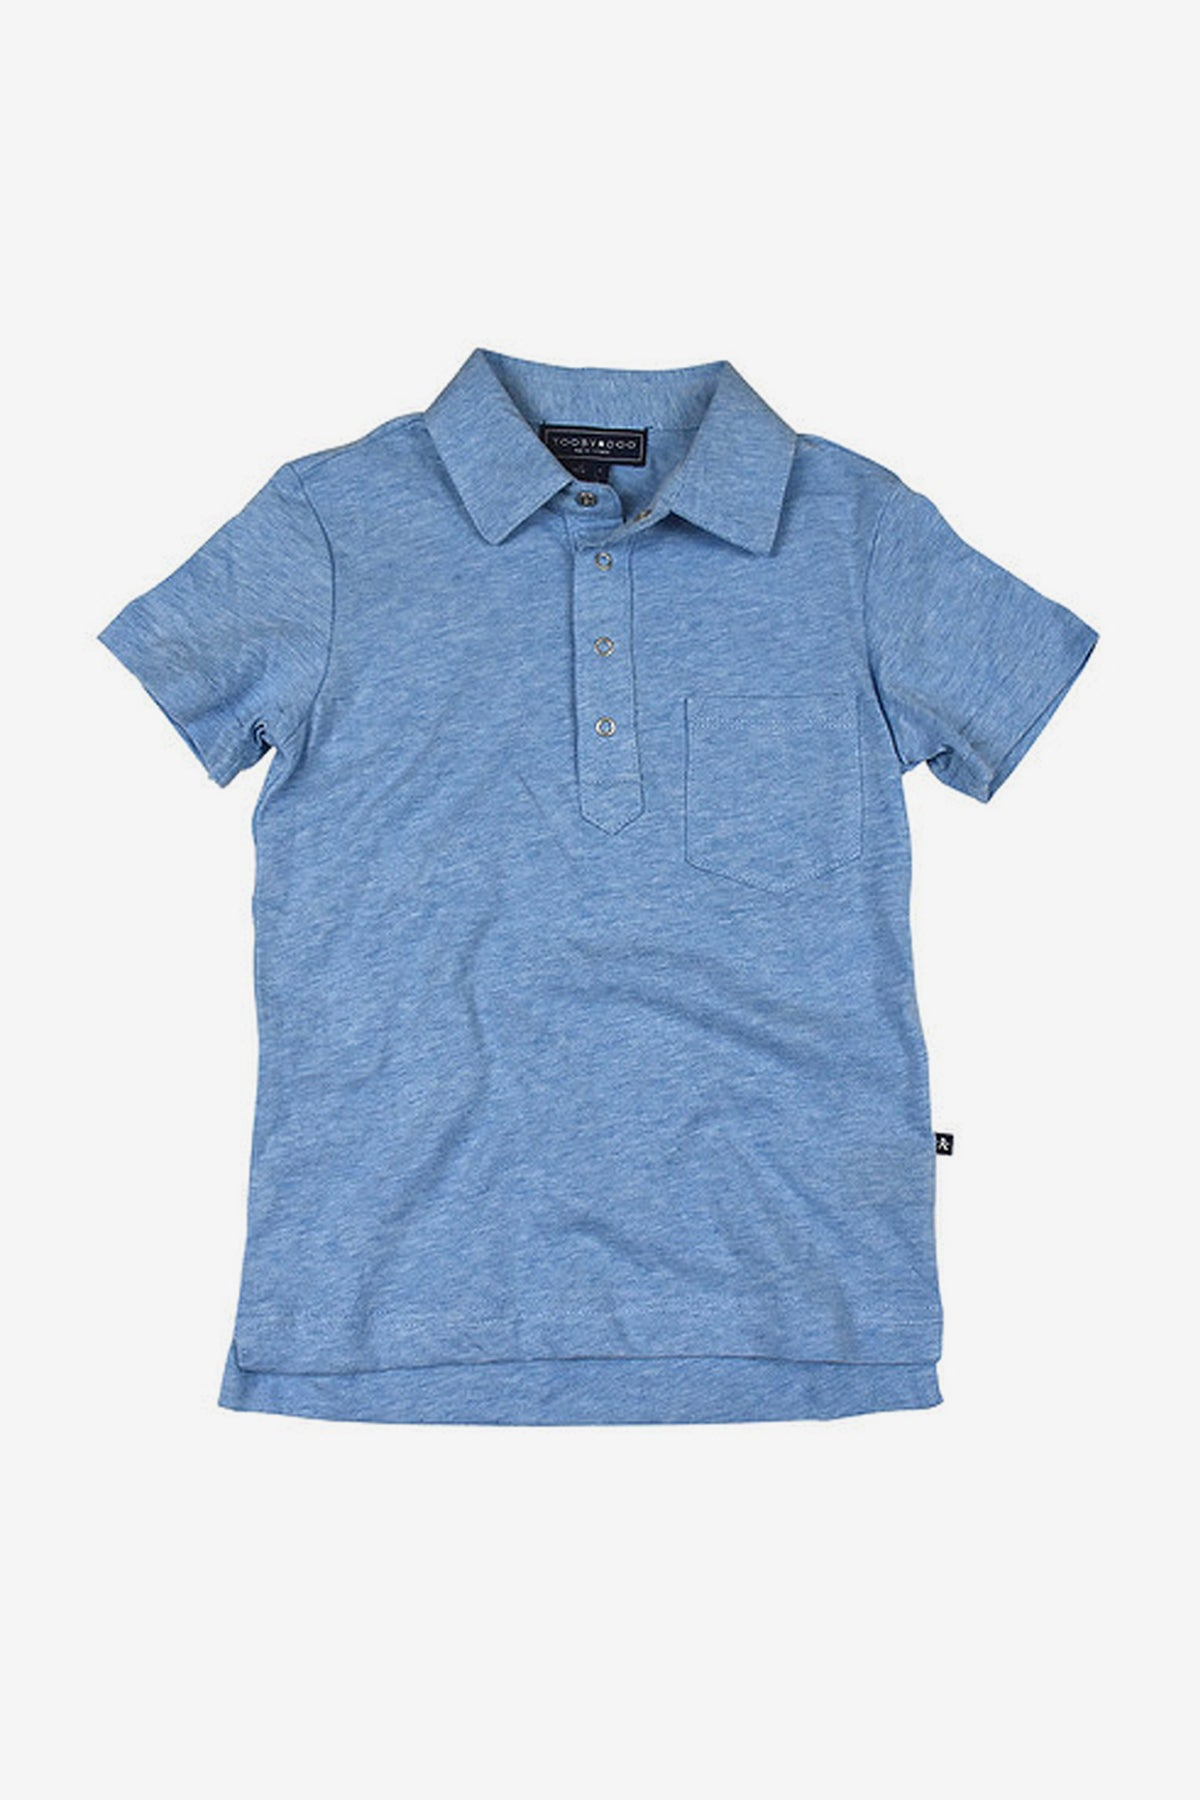 Toobydoo Studio Polo - Blue